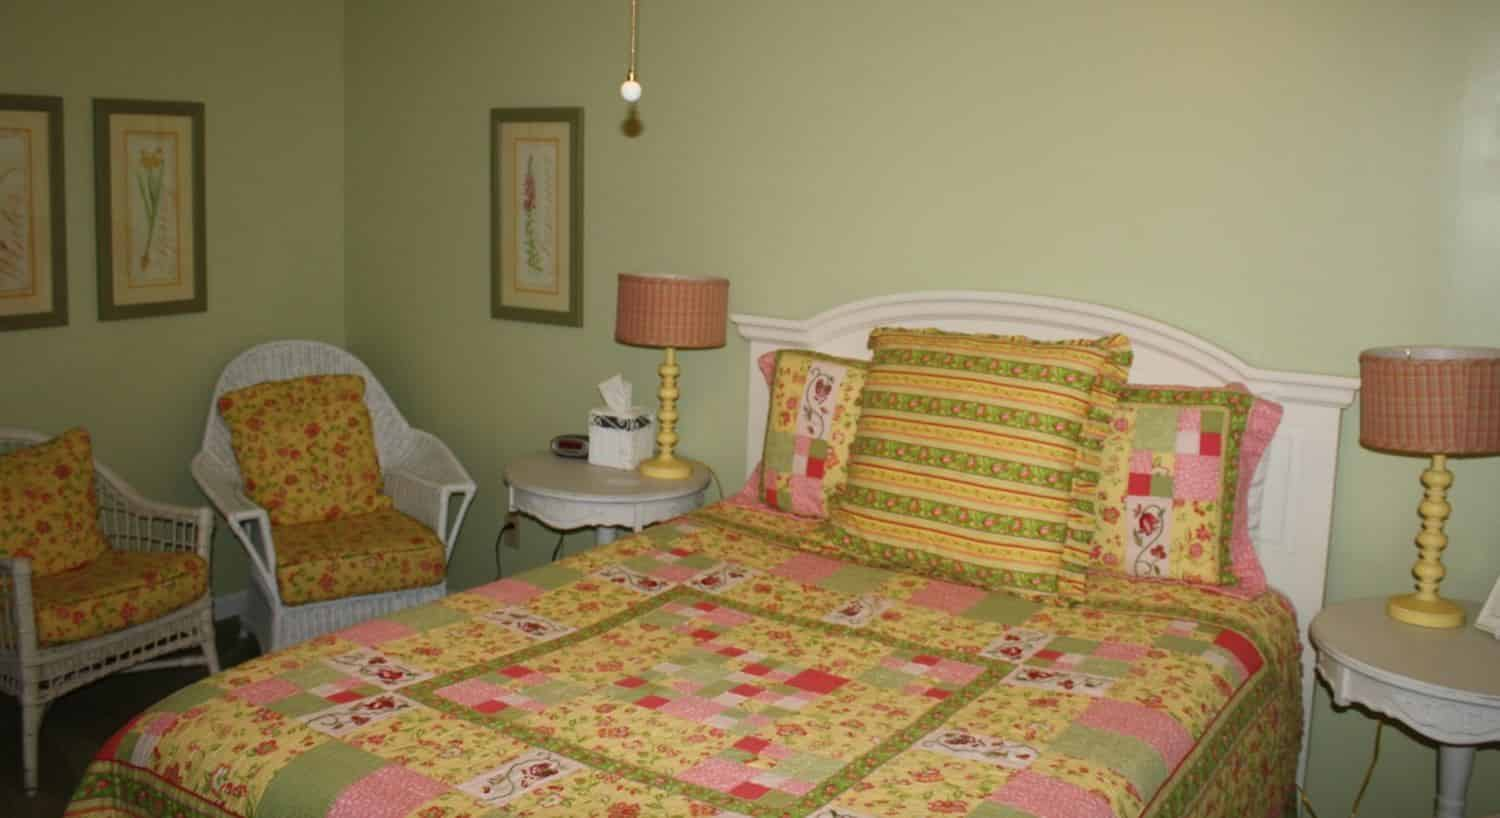 Bedroom painted light green with white headboard and green, yellow, and pink bedding and white wicker chairs